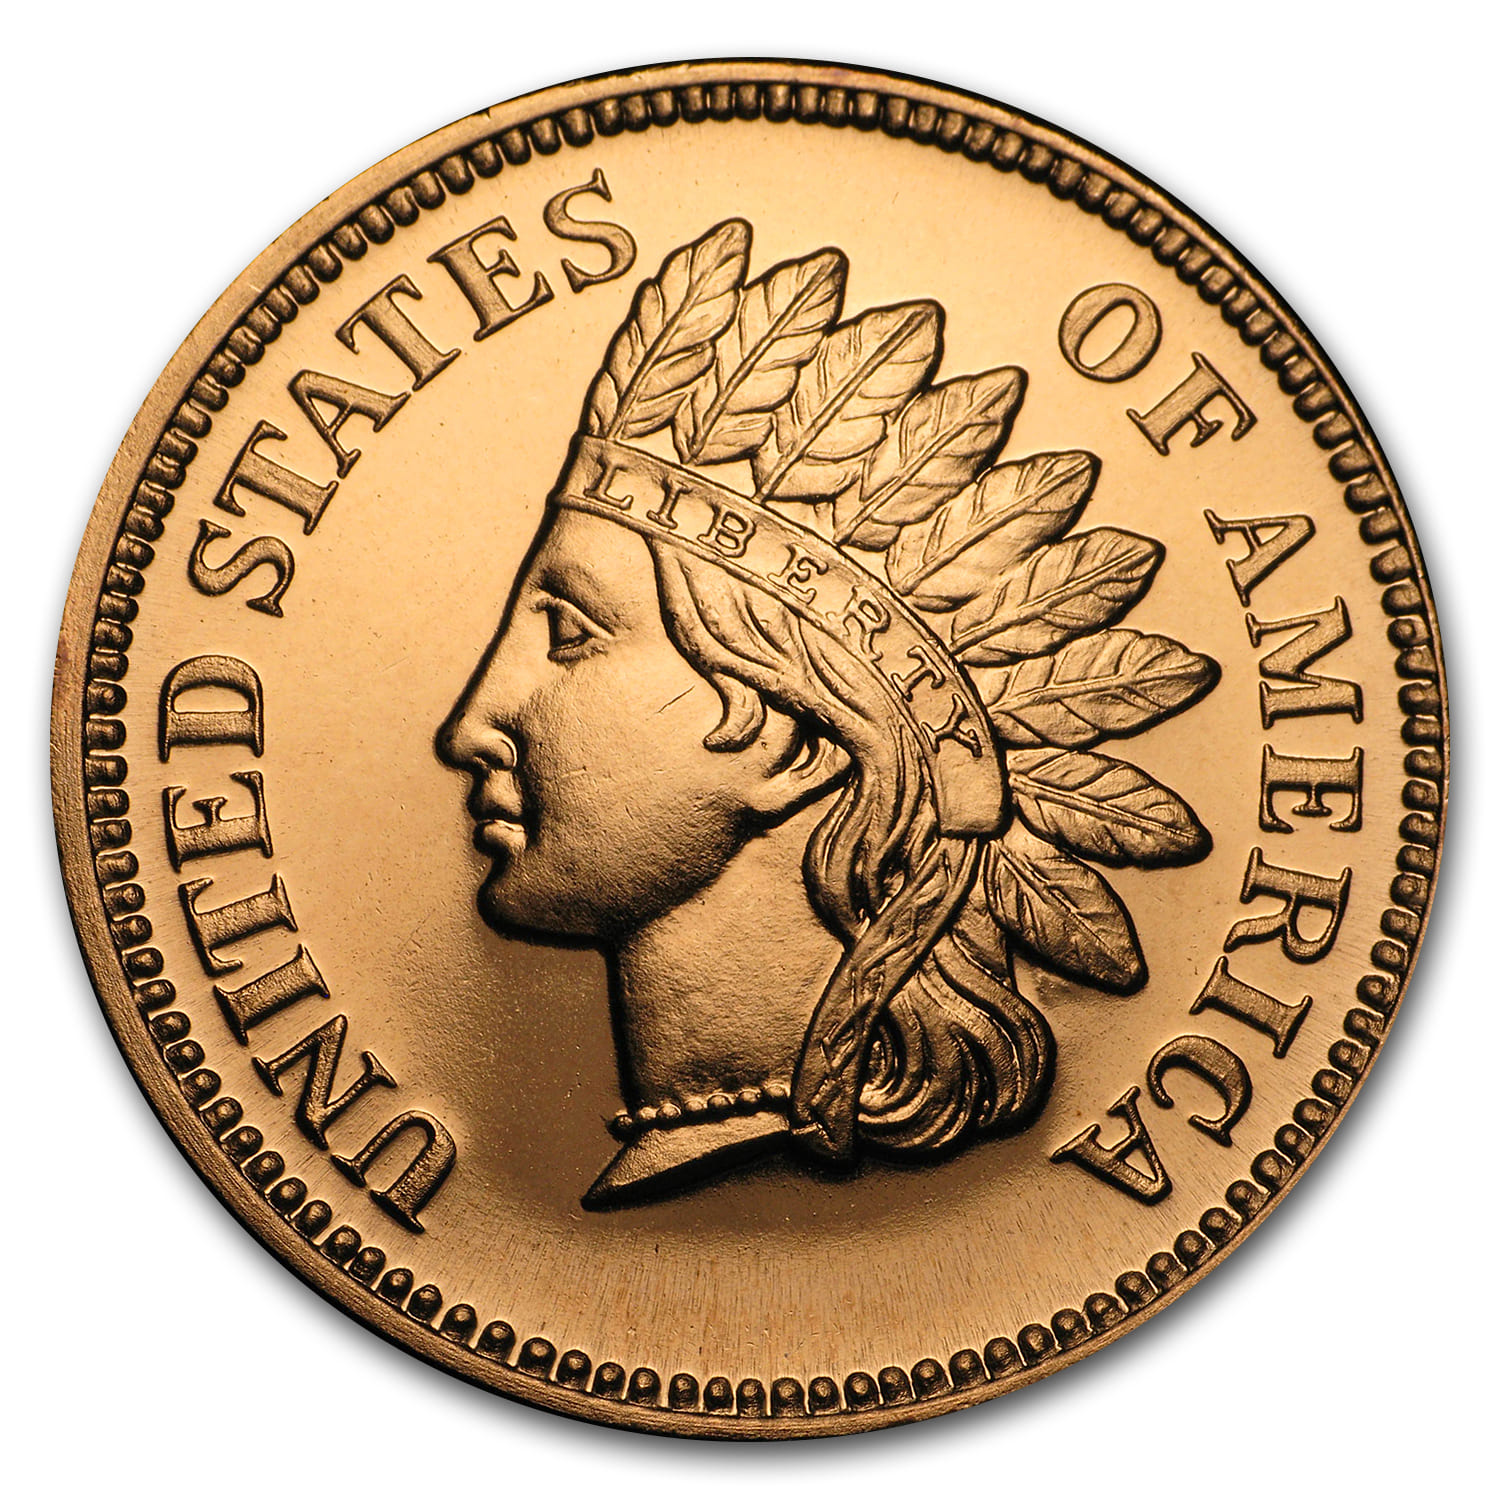 1 oz Copper Round - Indian Head Cent